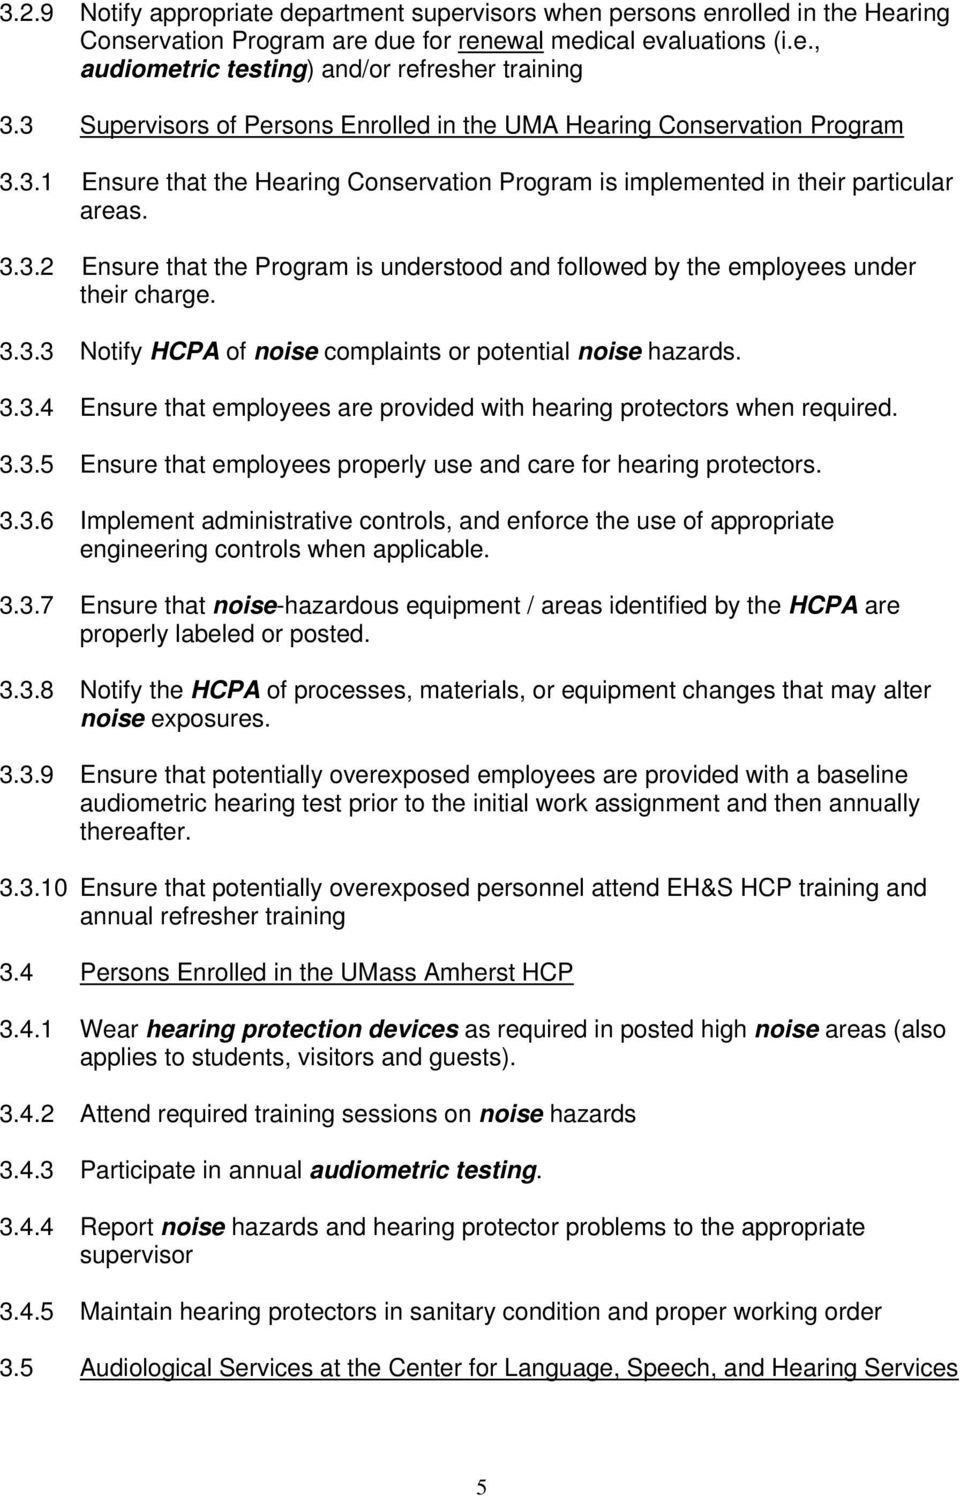 3.3.3 Notify HCPA of noise complaints or potential noise hazards. 3.3.4 Ensure that employees are provided with hearing protectors when required. 3.3.5 Ensure that employees properly use and care for hearing protectors.